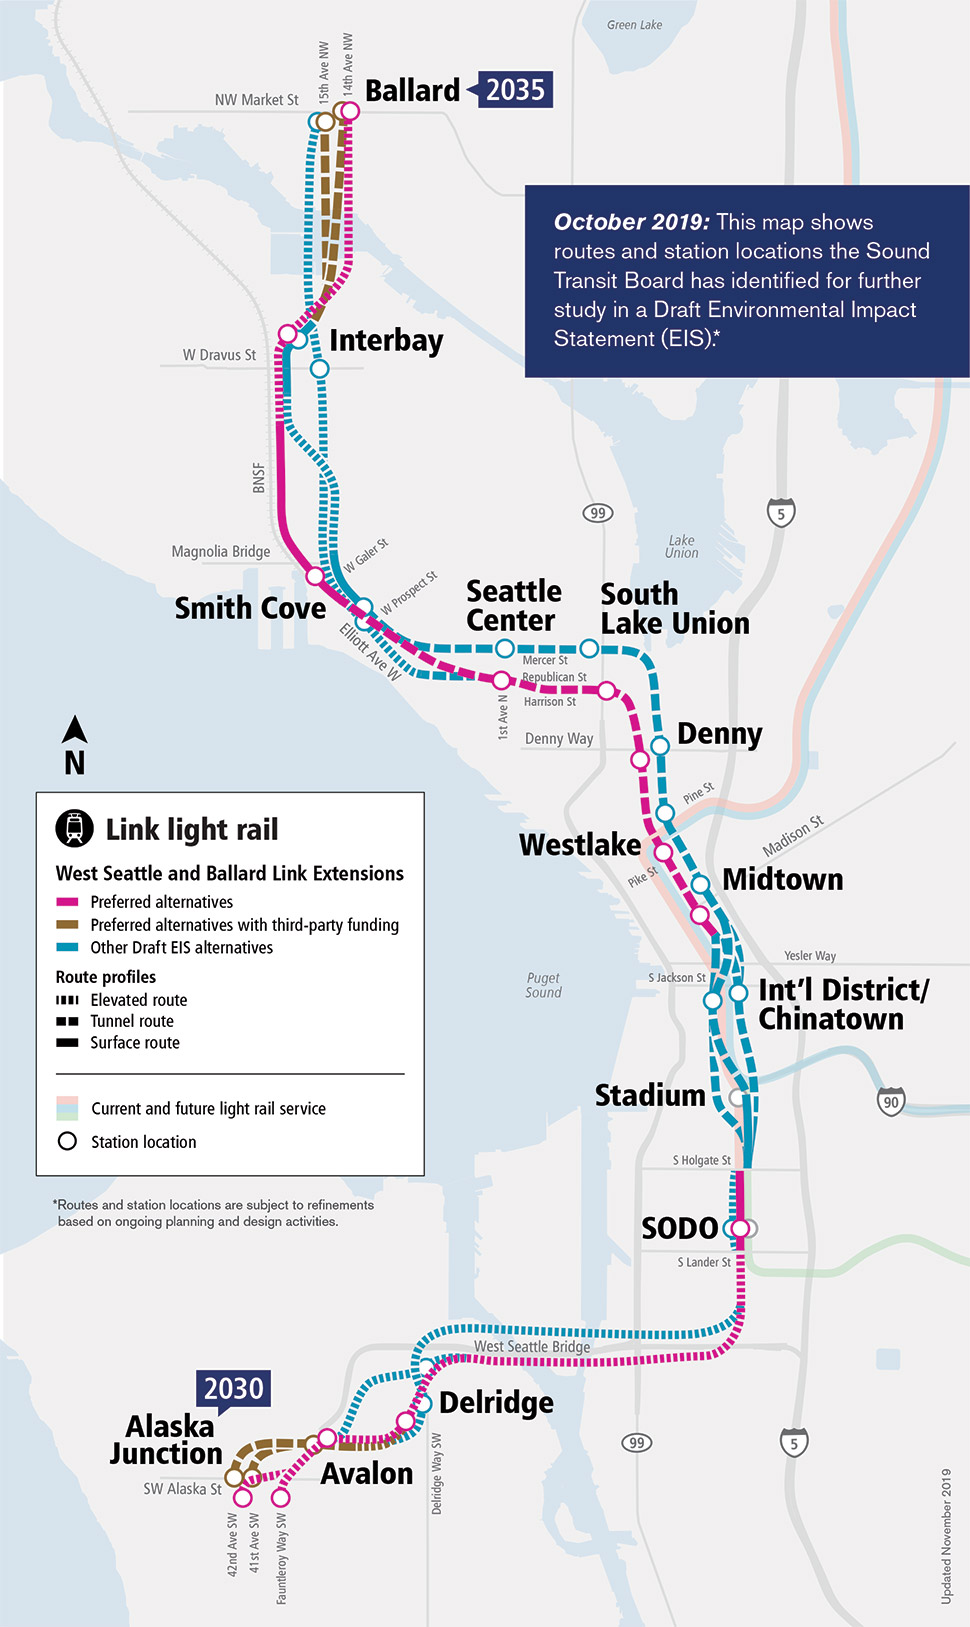 A map featuring route and station location options the Sound Transit Board identified for further study in the draft environmental impact statement, including preferred alternatives, preferred alternatives with third party funding and other draft environmental impact statement alternatives.